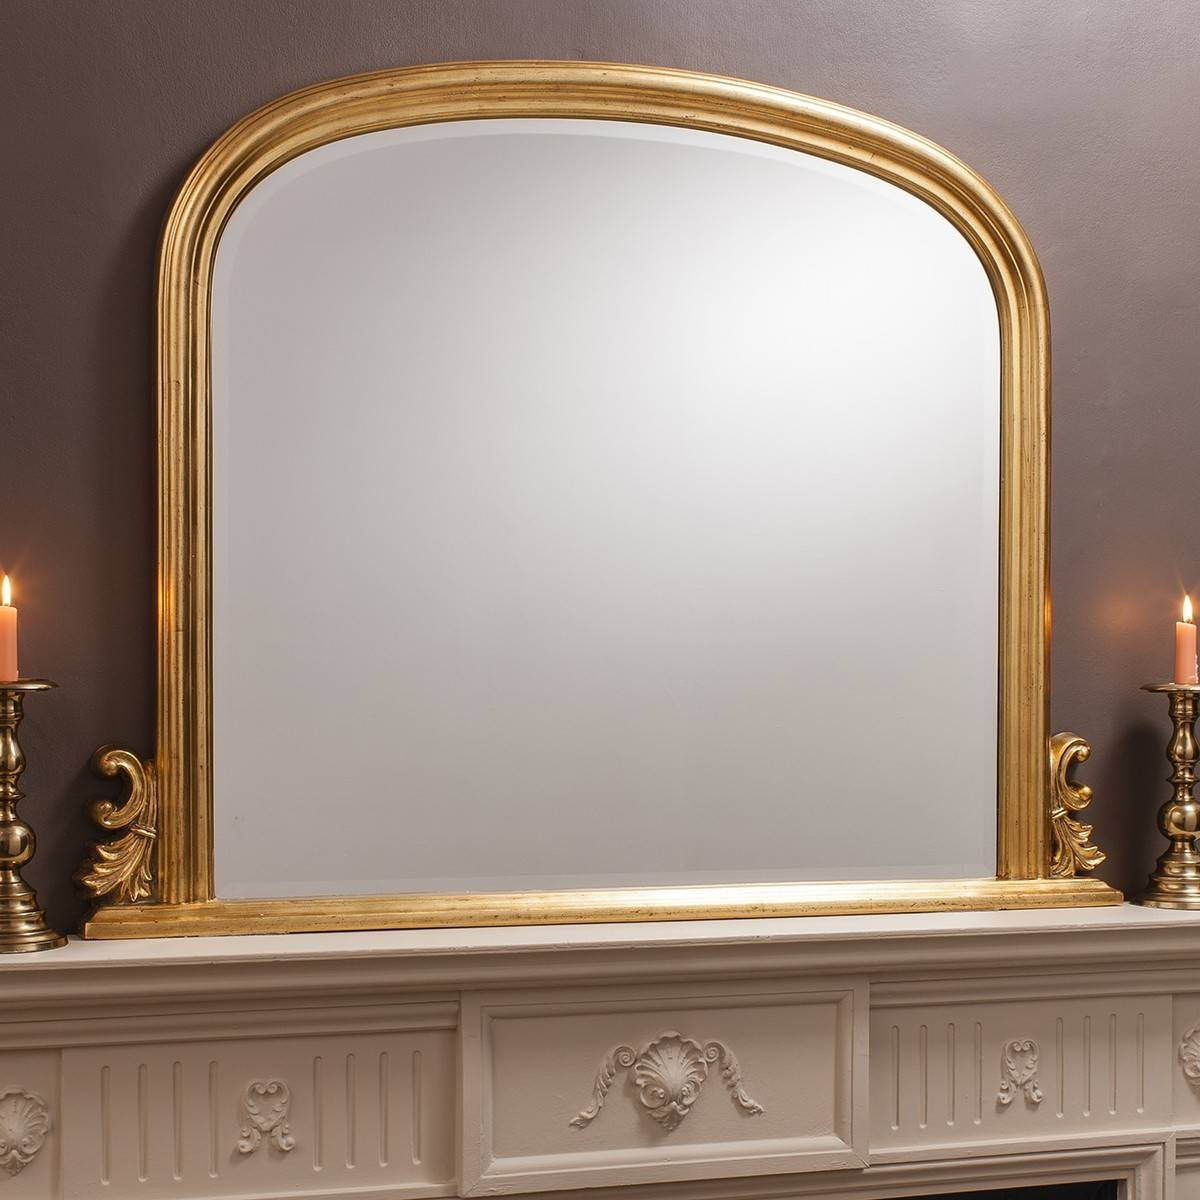 Grace Overmantle Mirror From £249 - Luxury Overmantle Mirrors with Overmantel Mirrors (Image 9 of 25)